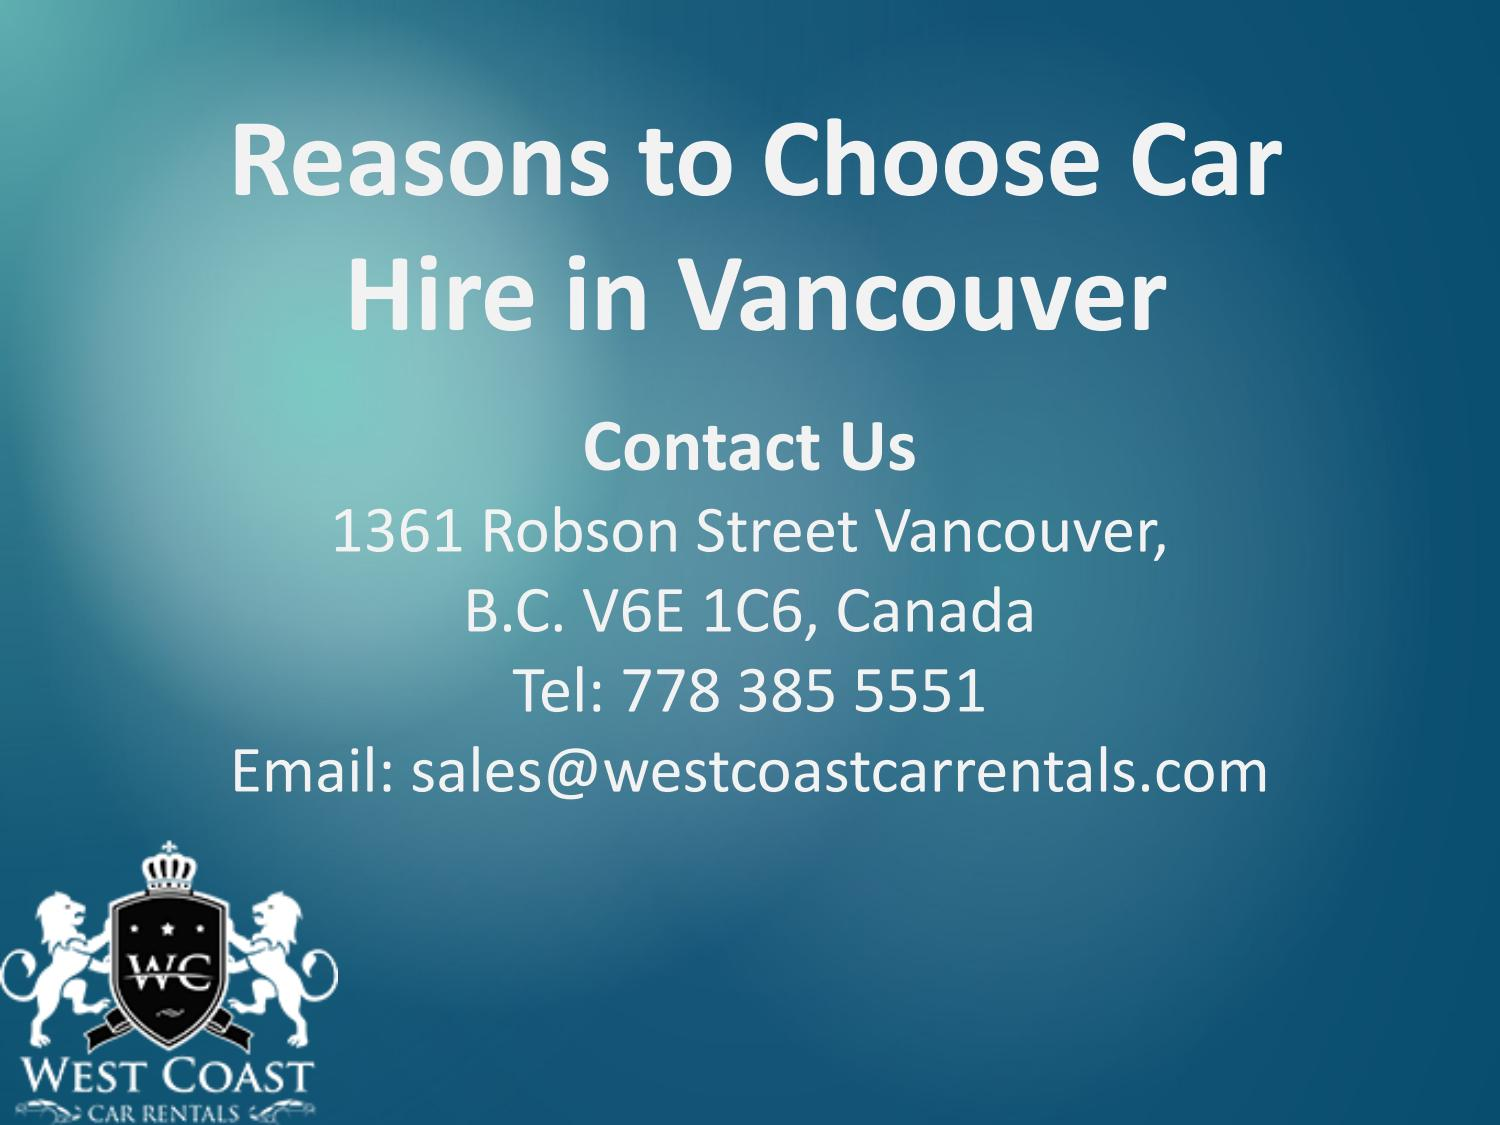 Reasons To Choose Car Hire In Vancouver By West Coast Car Rentals